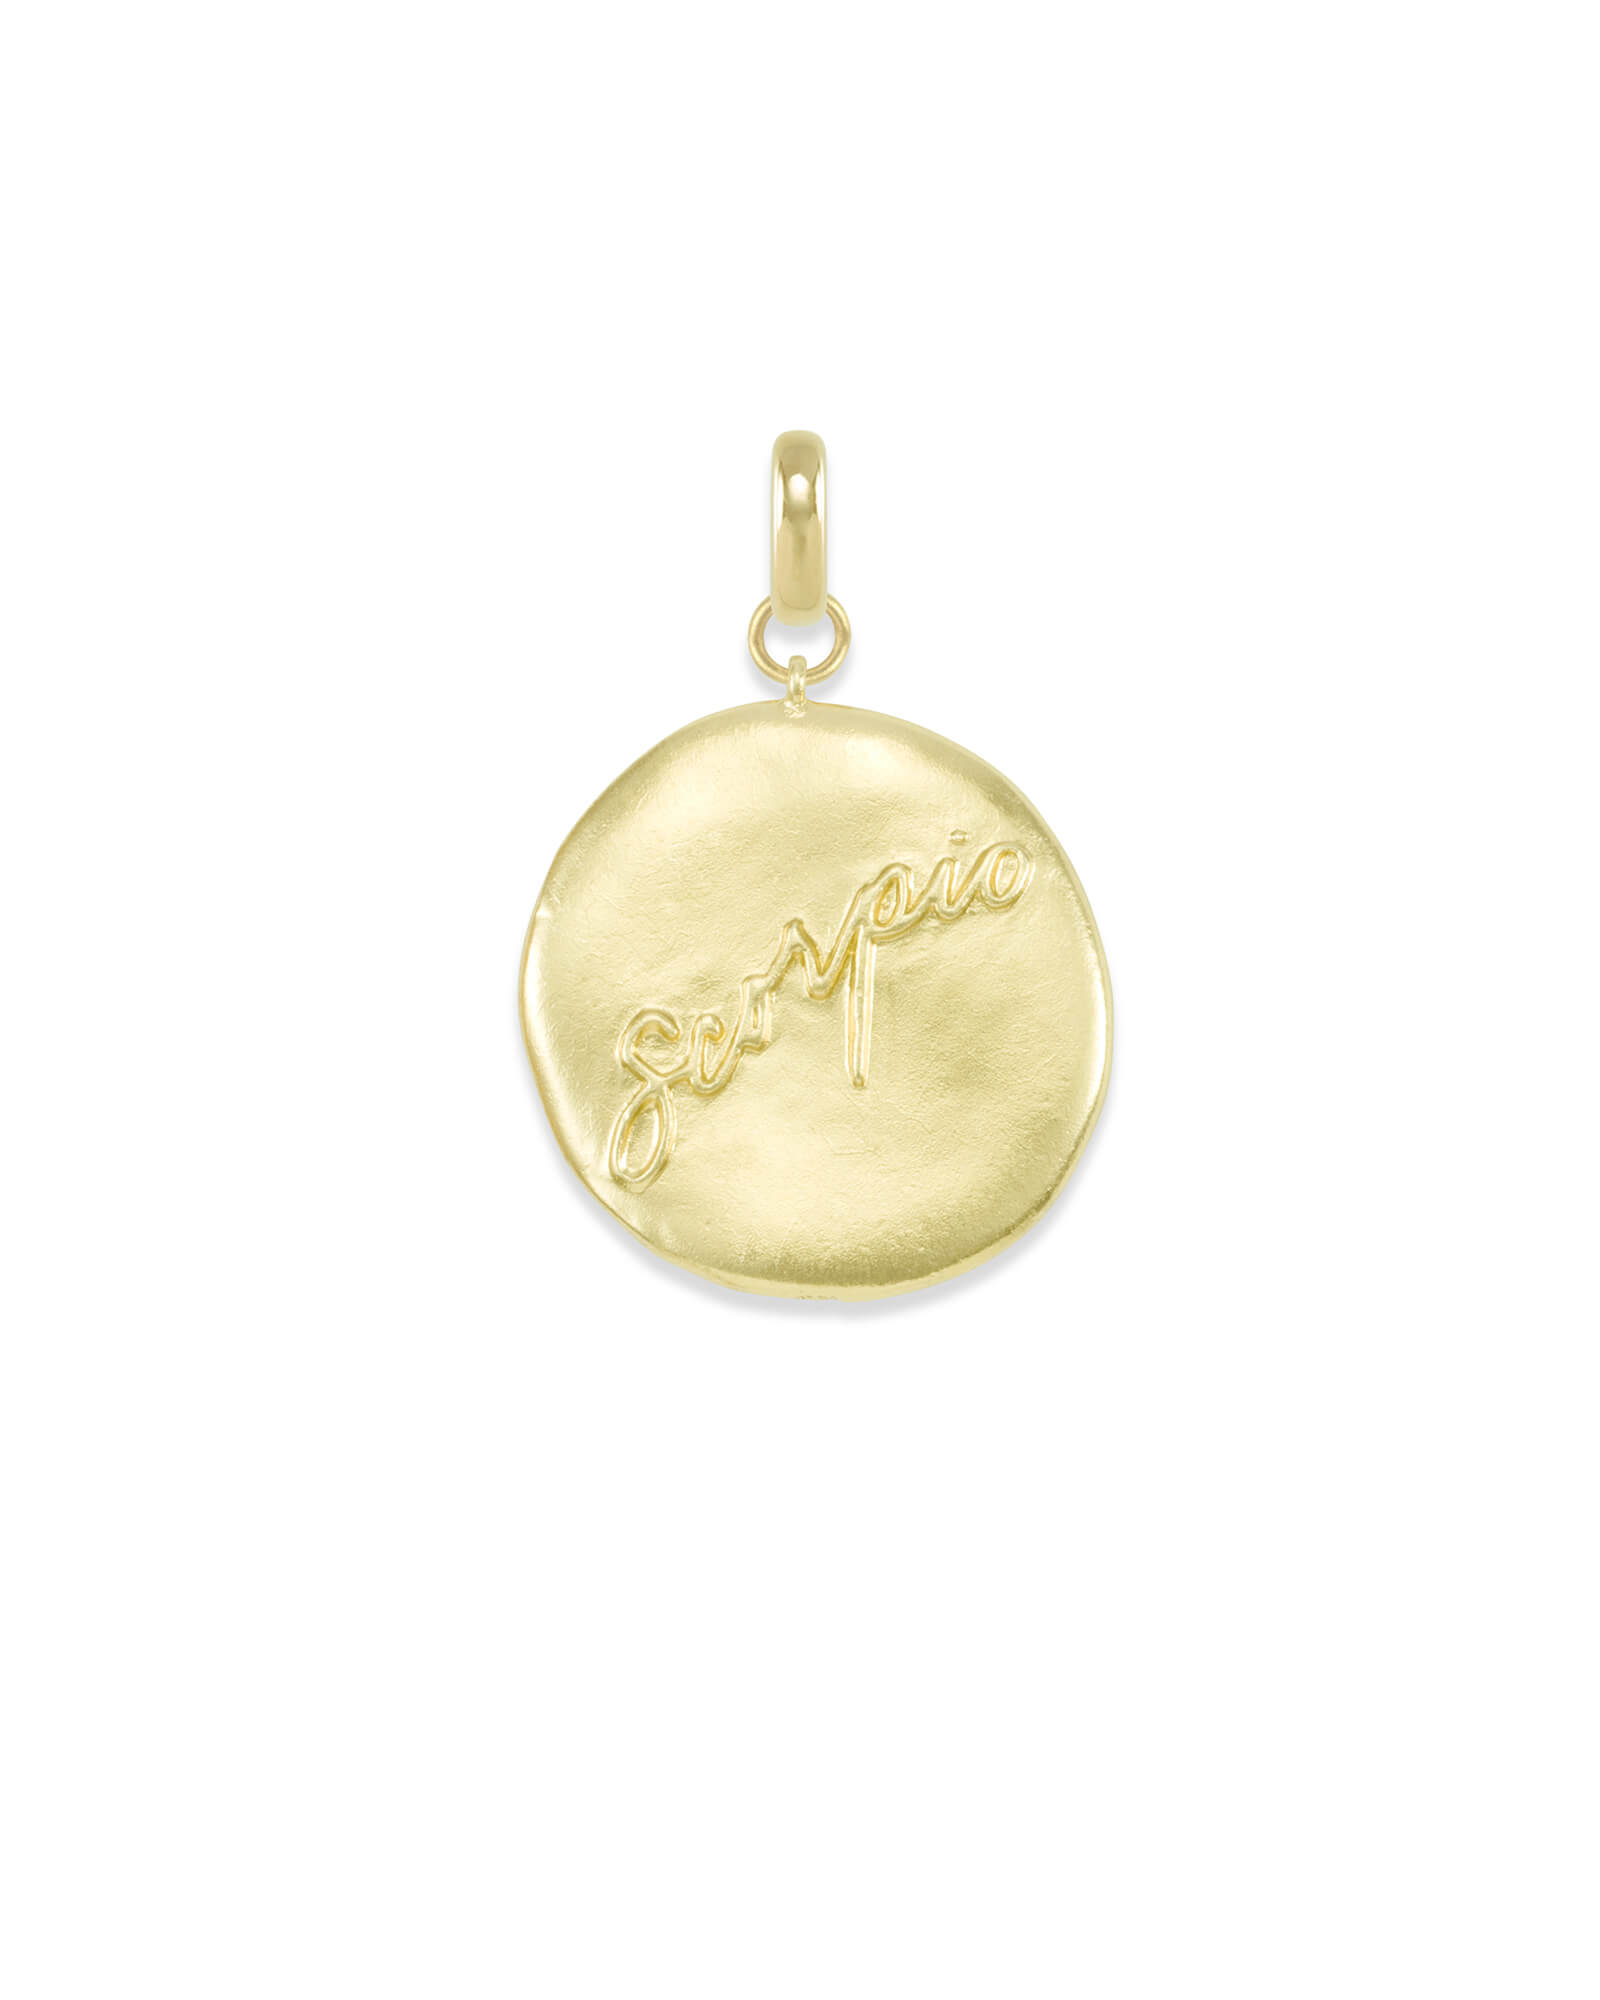 Scorpio Coin Charm in Gold